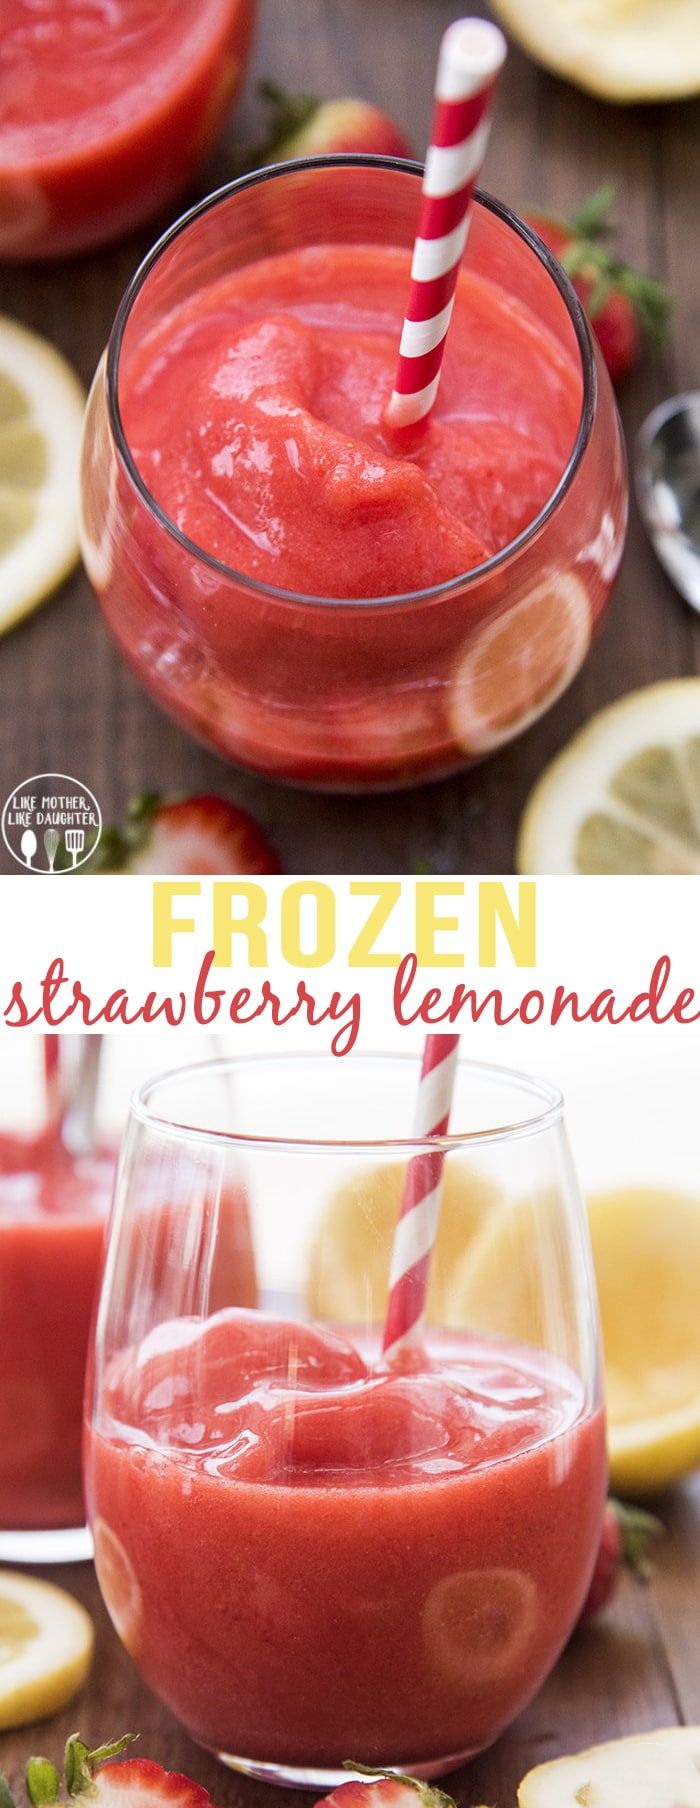 Frozen Strawberry Lemonade is the perfect sweet and tangy cold treat to help you stay cool this summer!